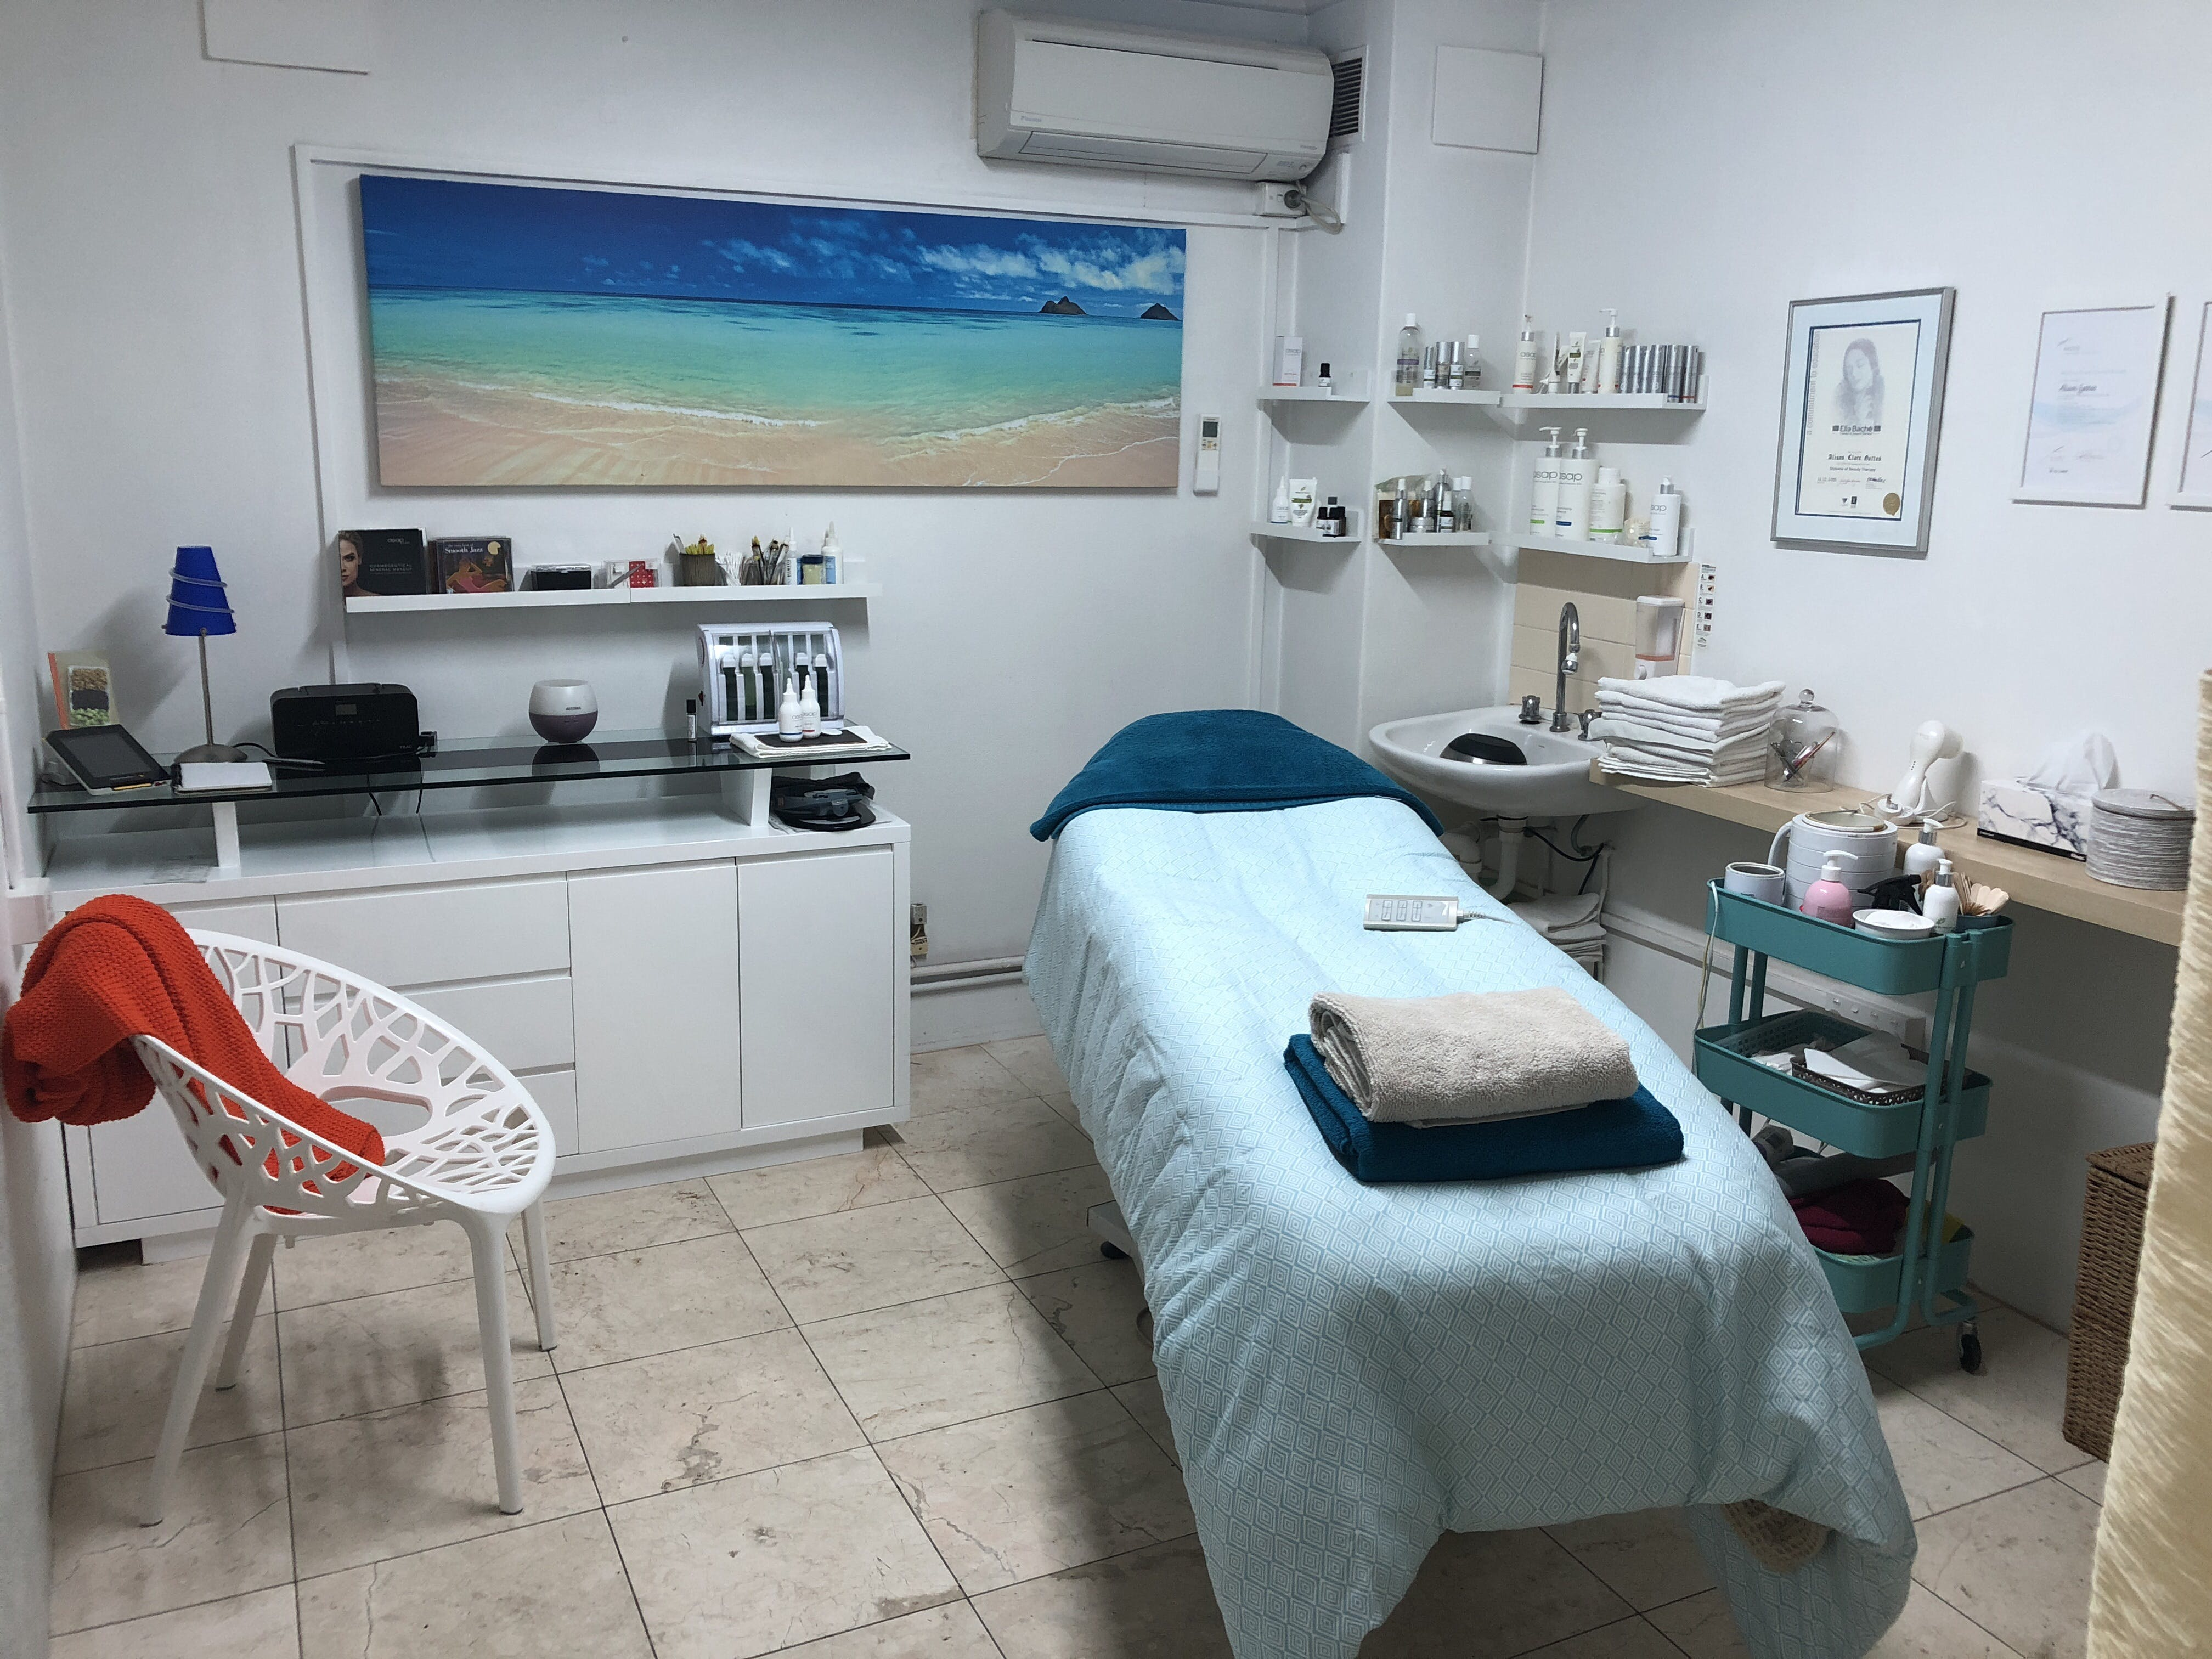 Creative studio at The Beauty Concept, image 1